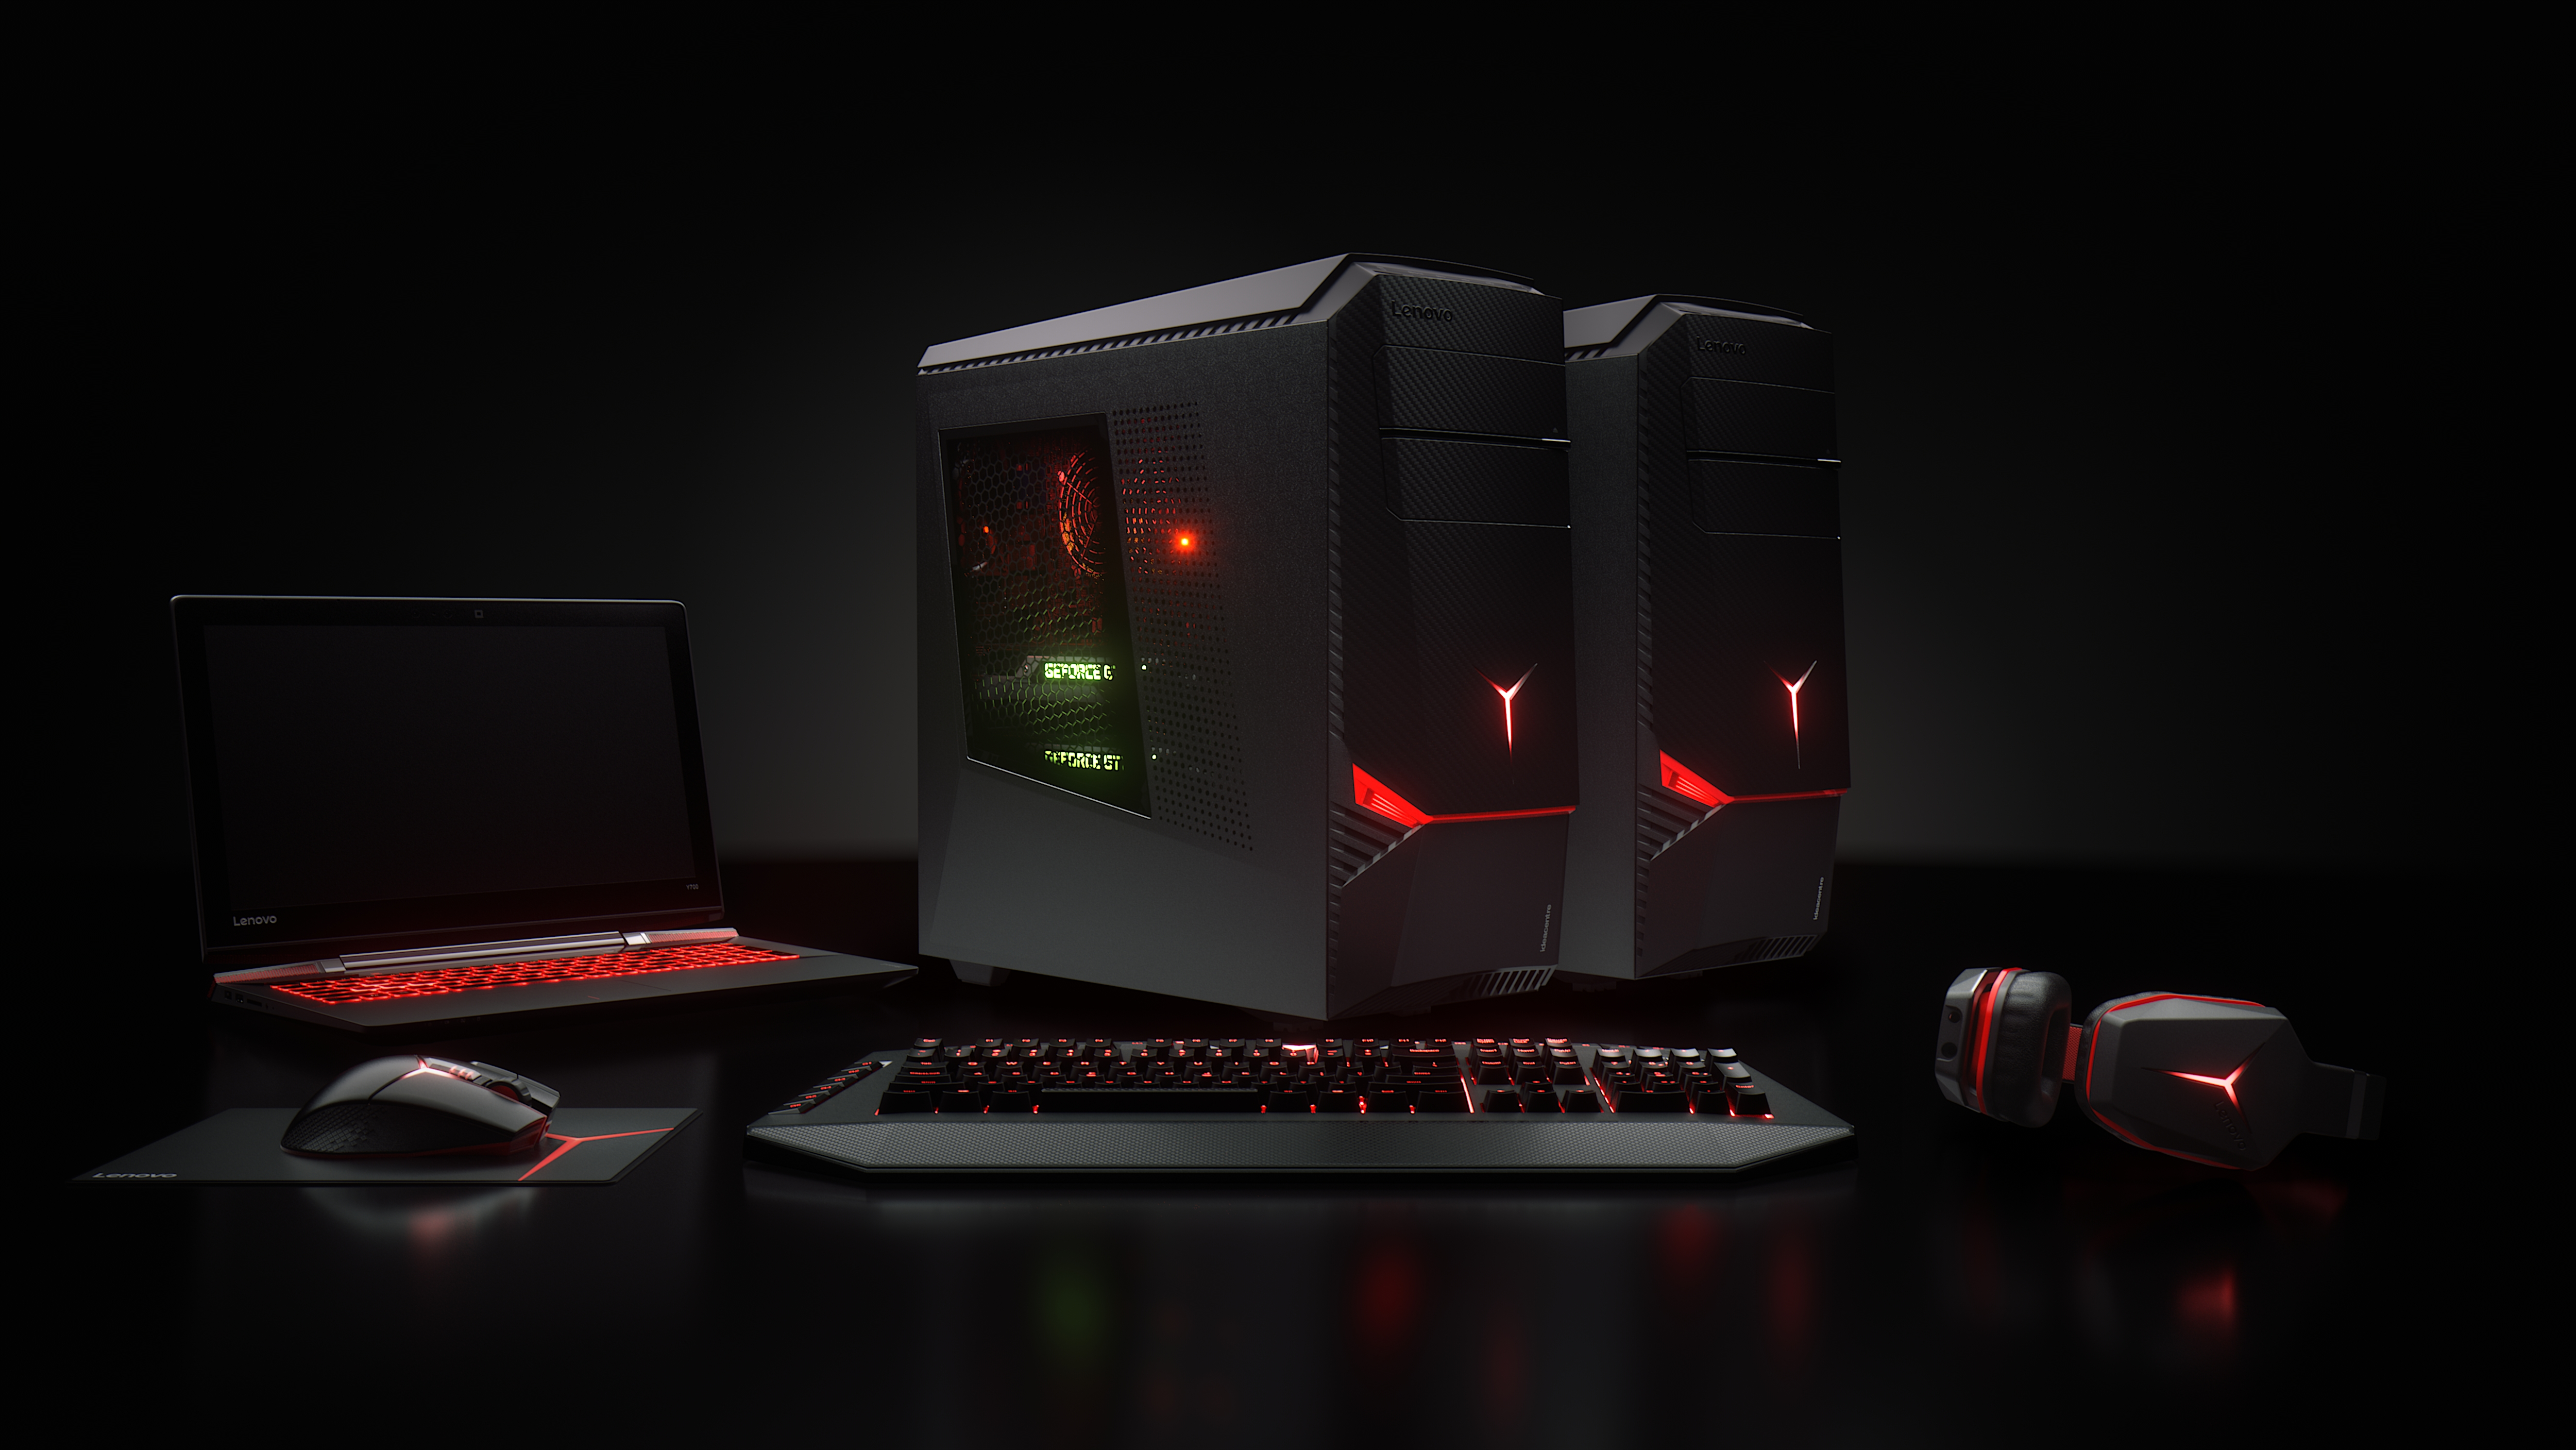 Lenovo gives pc gaming another shot with new angry looking - Gaming wallpaper ...